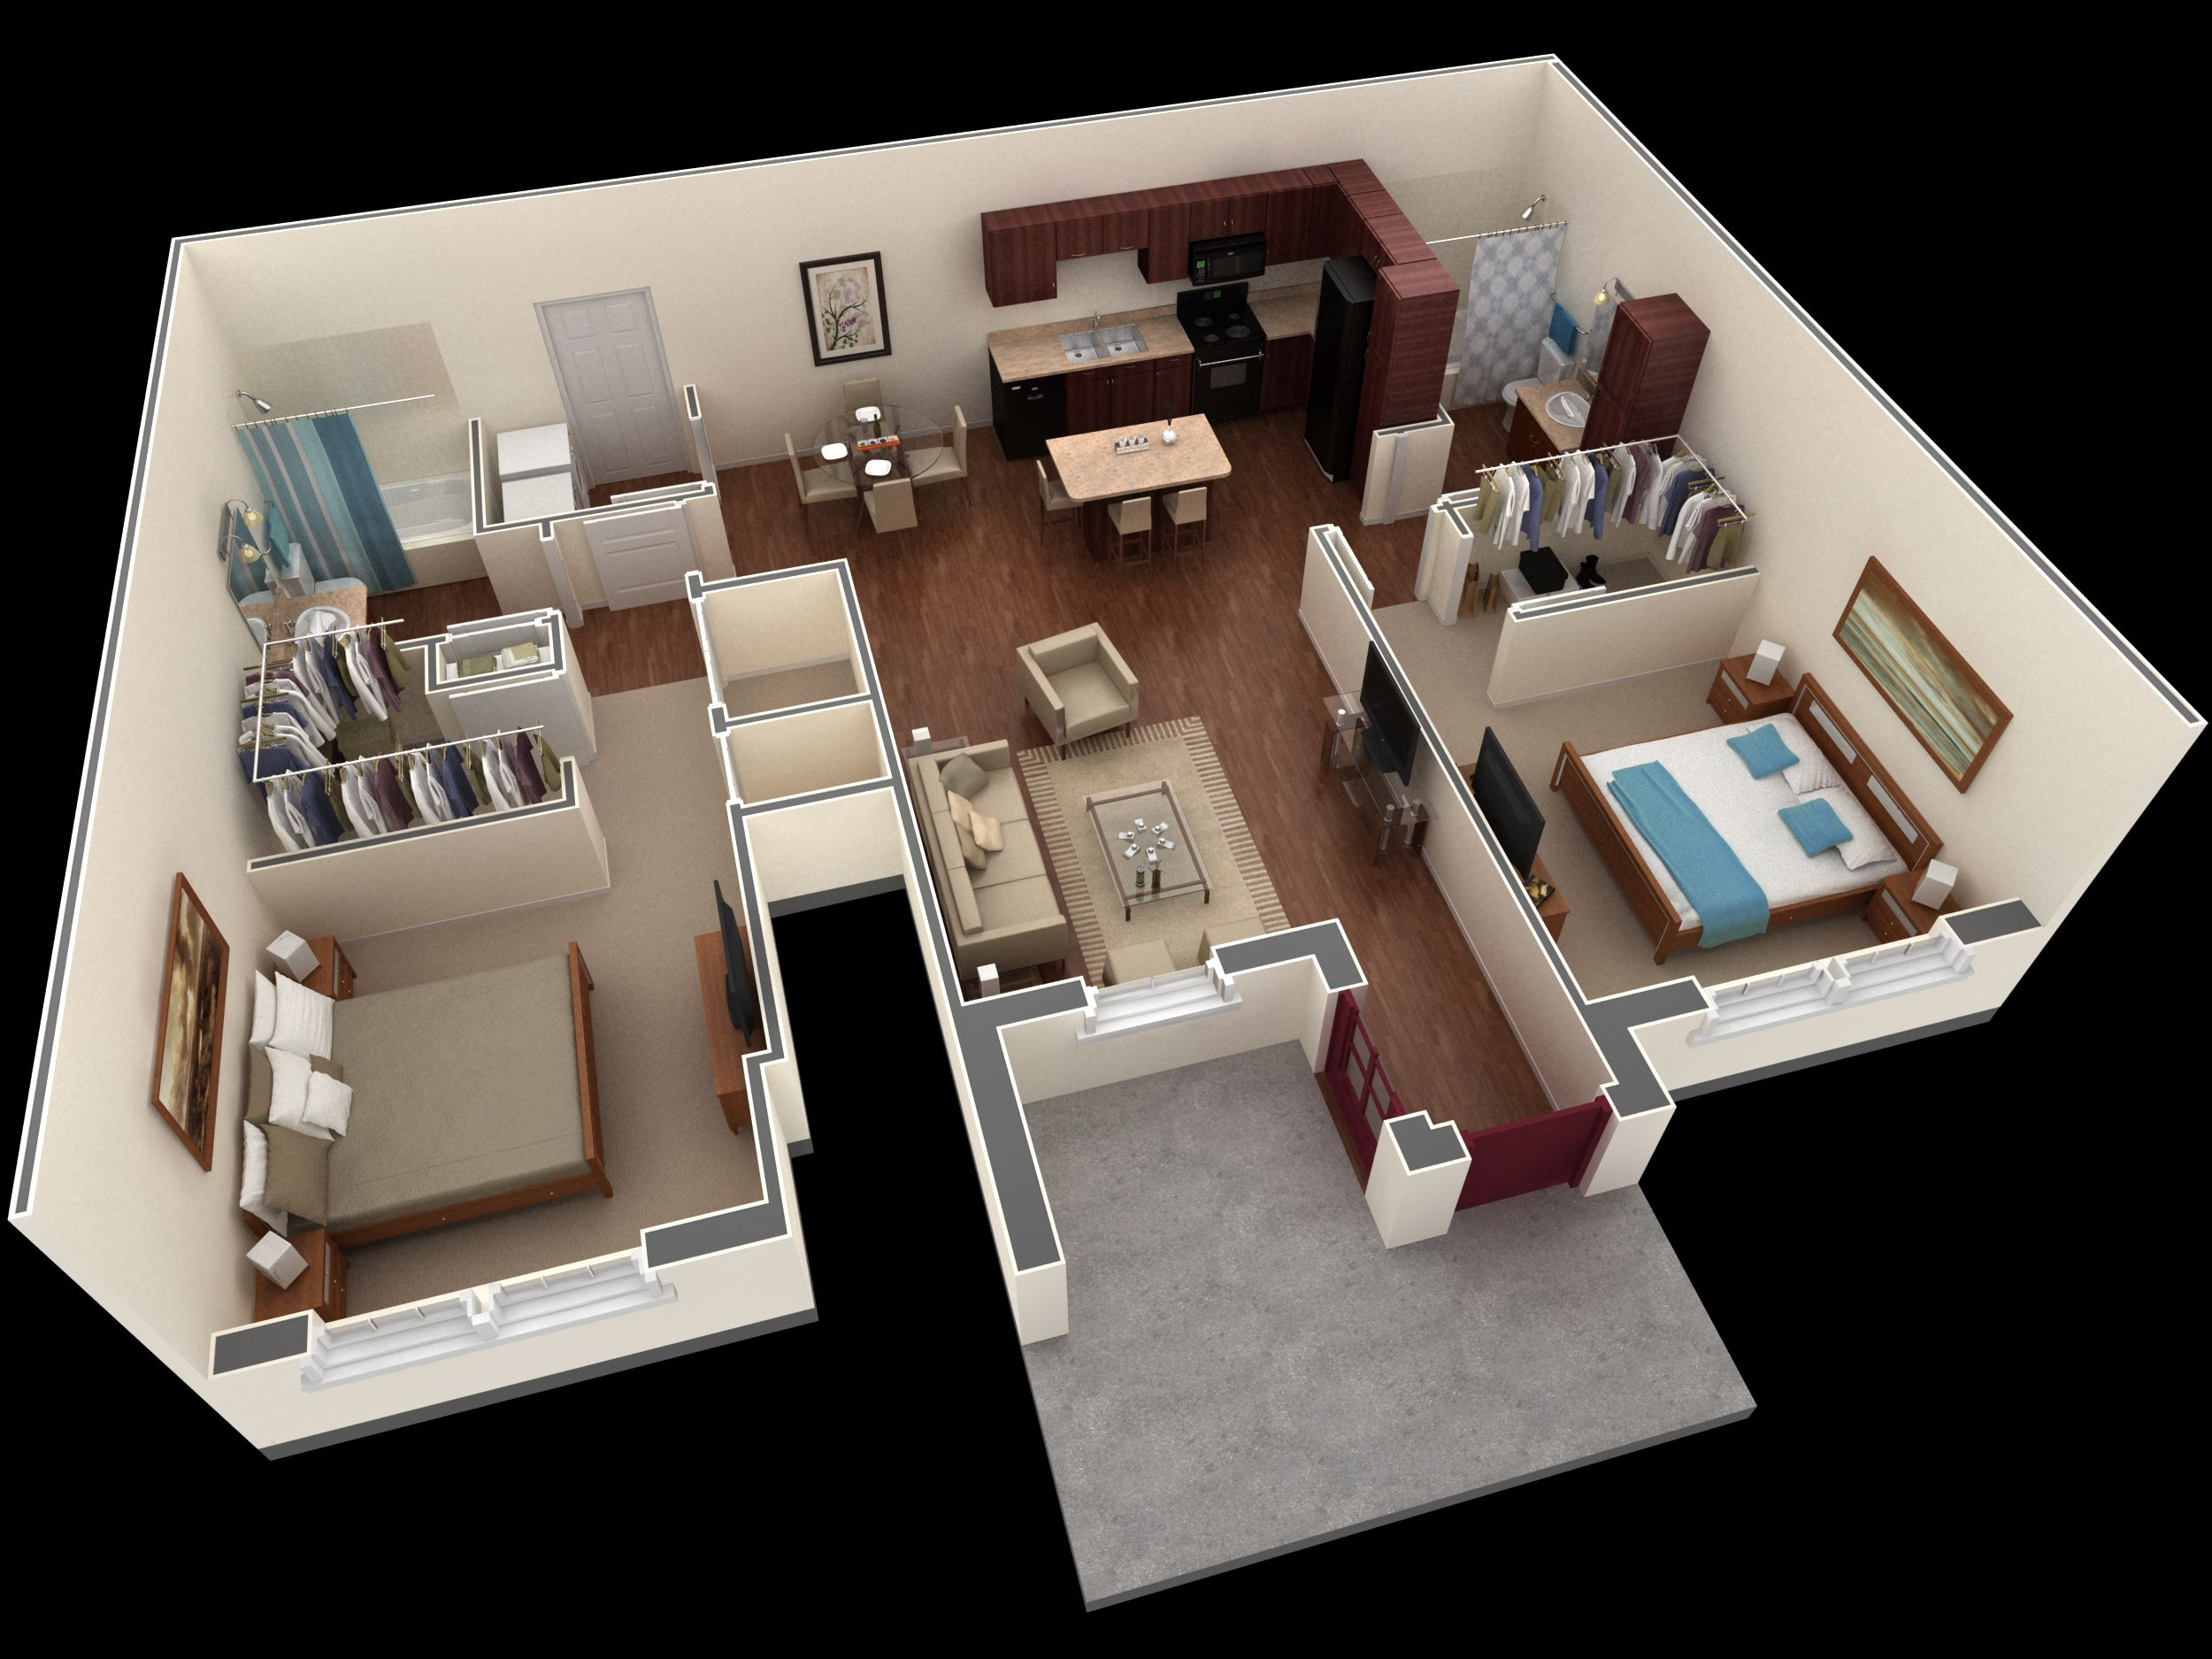 2 Bedroom 2 Bath 1137 Sf Apartment At Springs At Legacy Commons Apartments In Omaha Ne The Apartme Small House